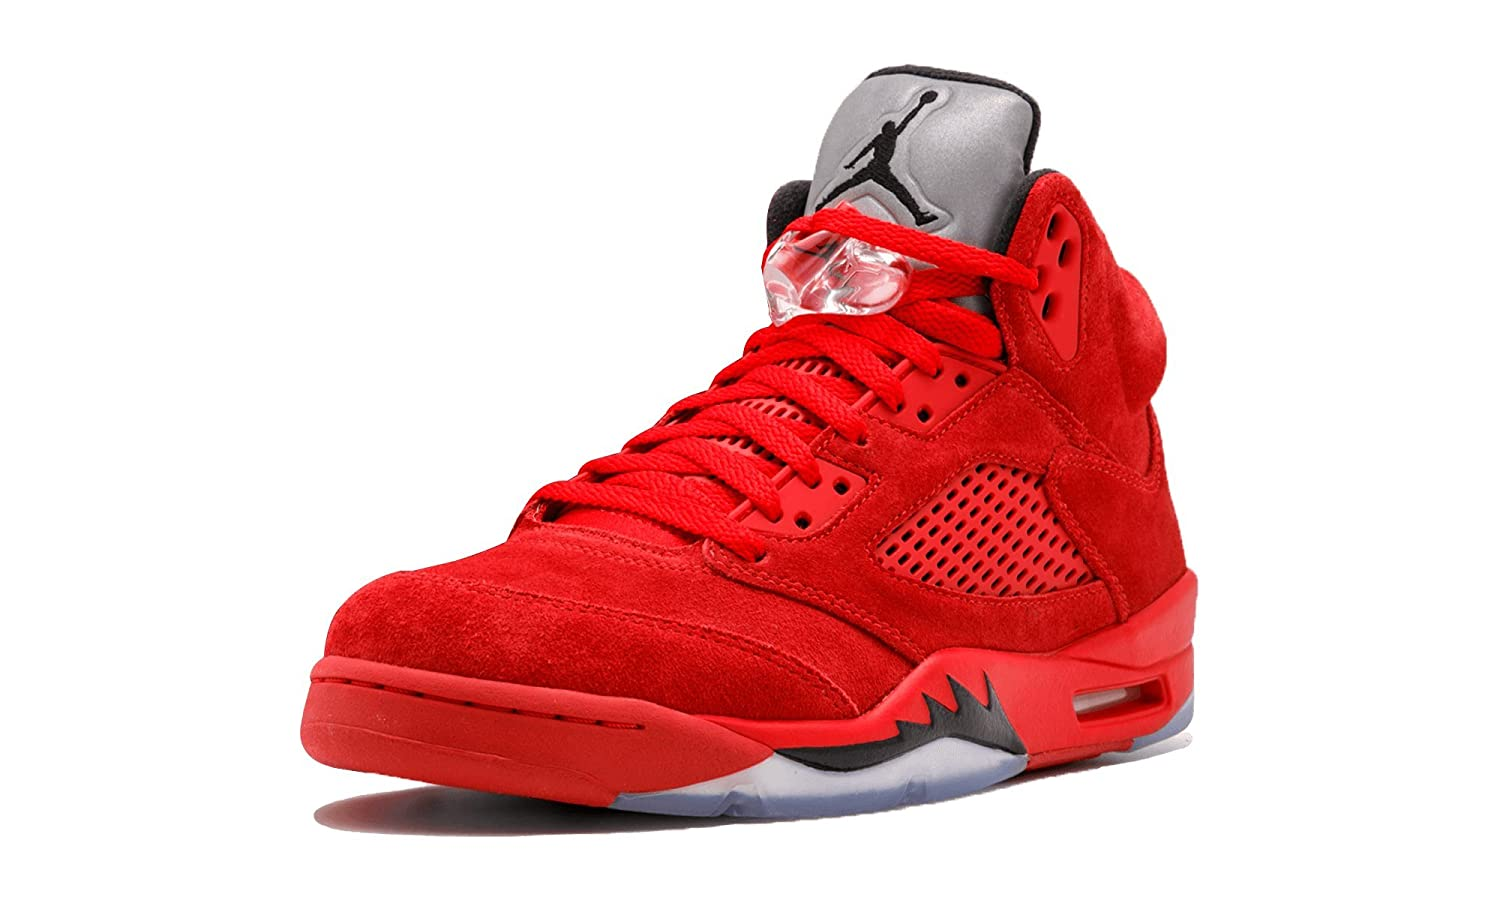 premium selection b6442 27431 Amazon.com   Air Jordan 5 Retro